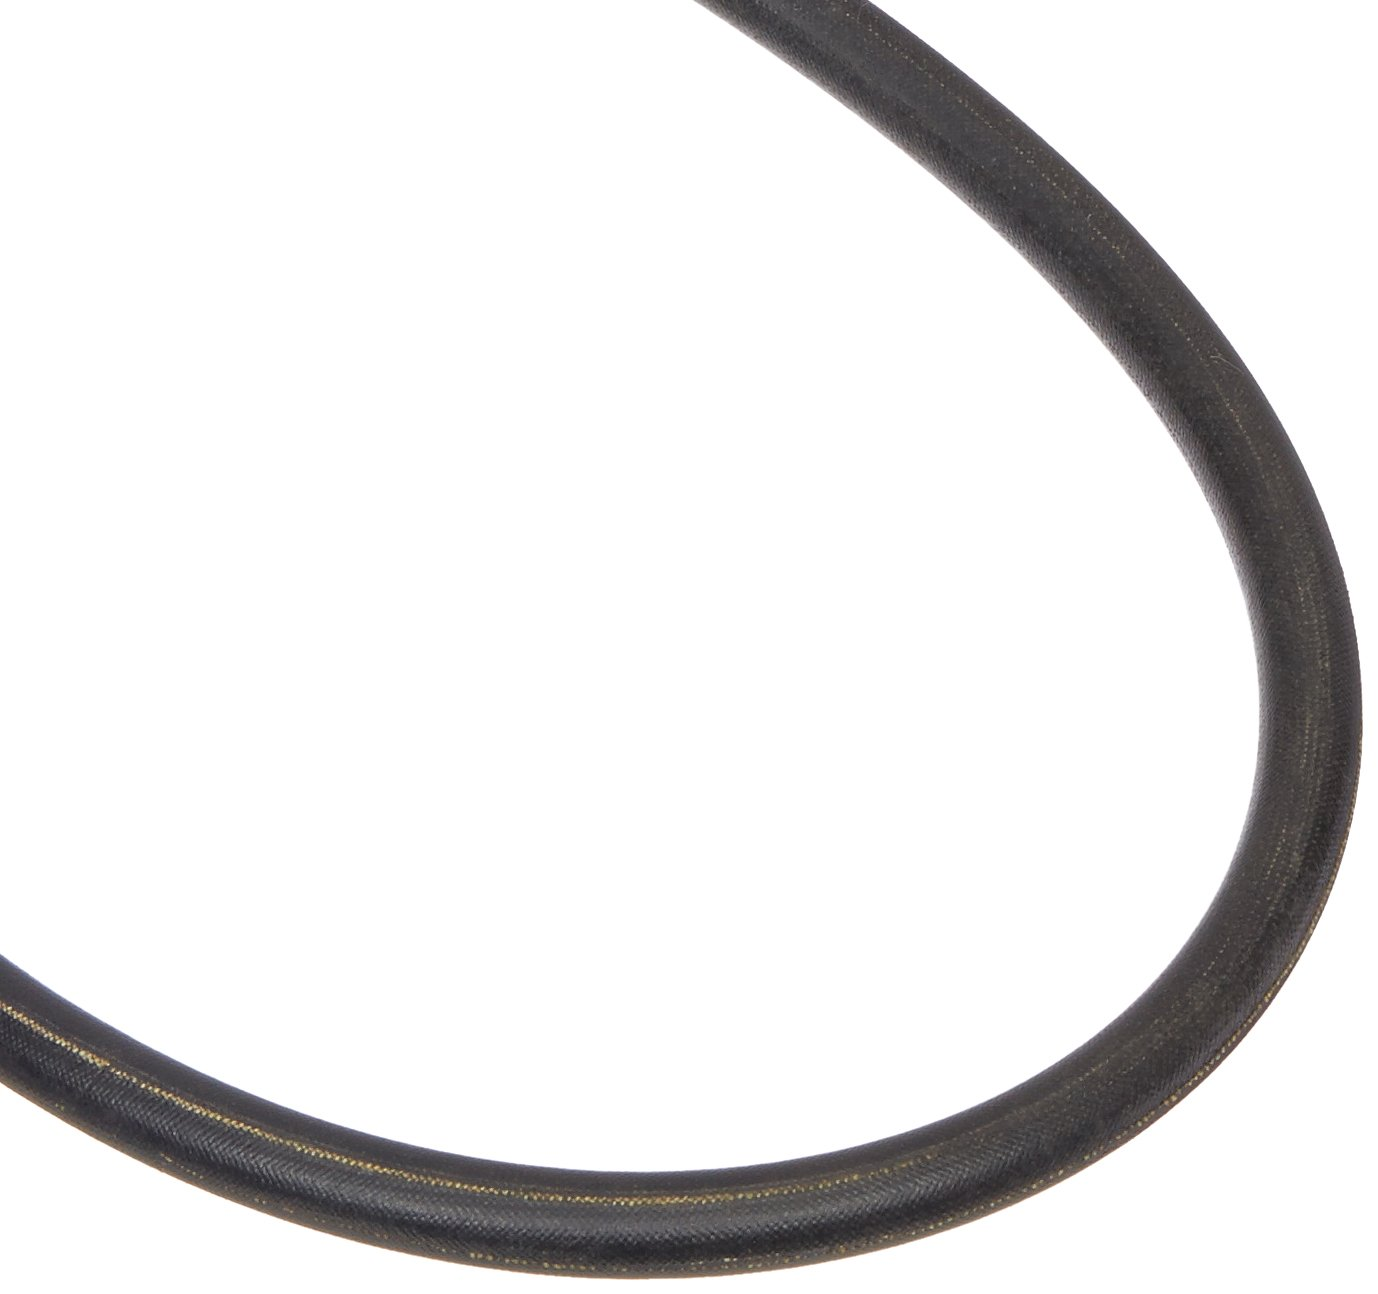 Gates 7 X 36 RE Belt Endless Free shipping Attention brand on posting reviews Ins Round Diameter 16